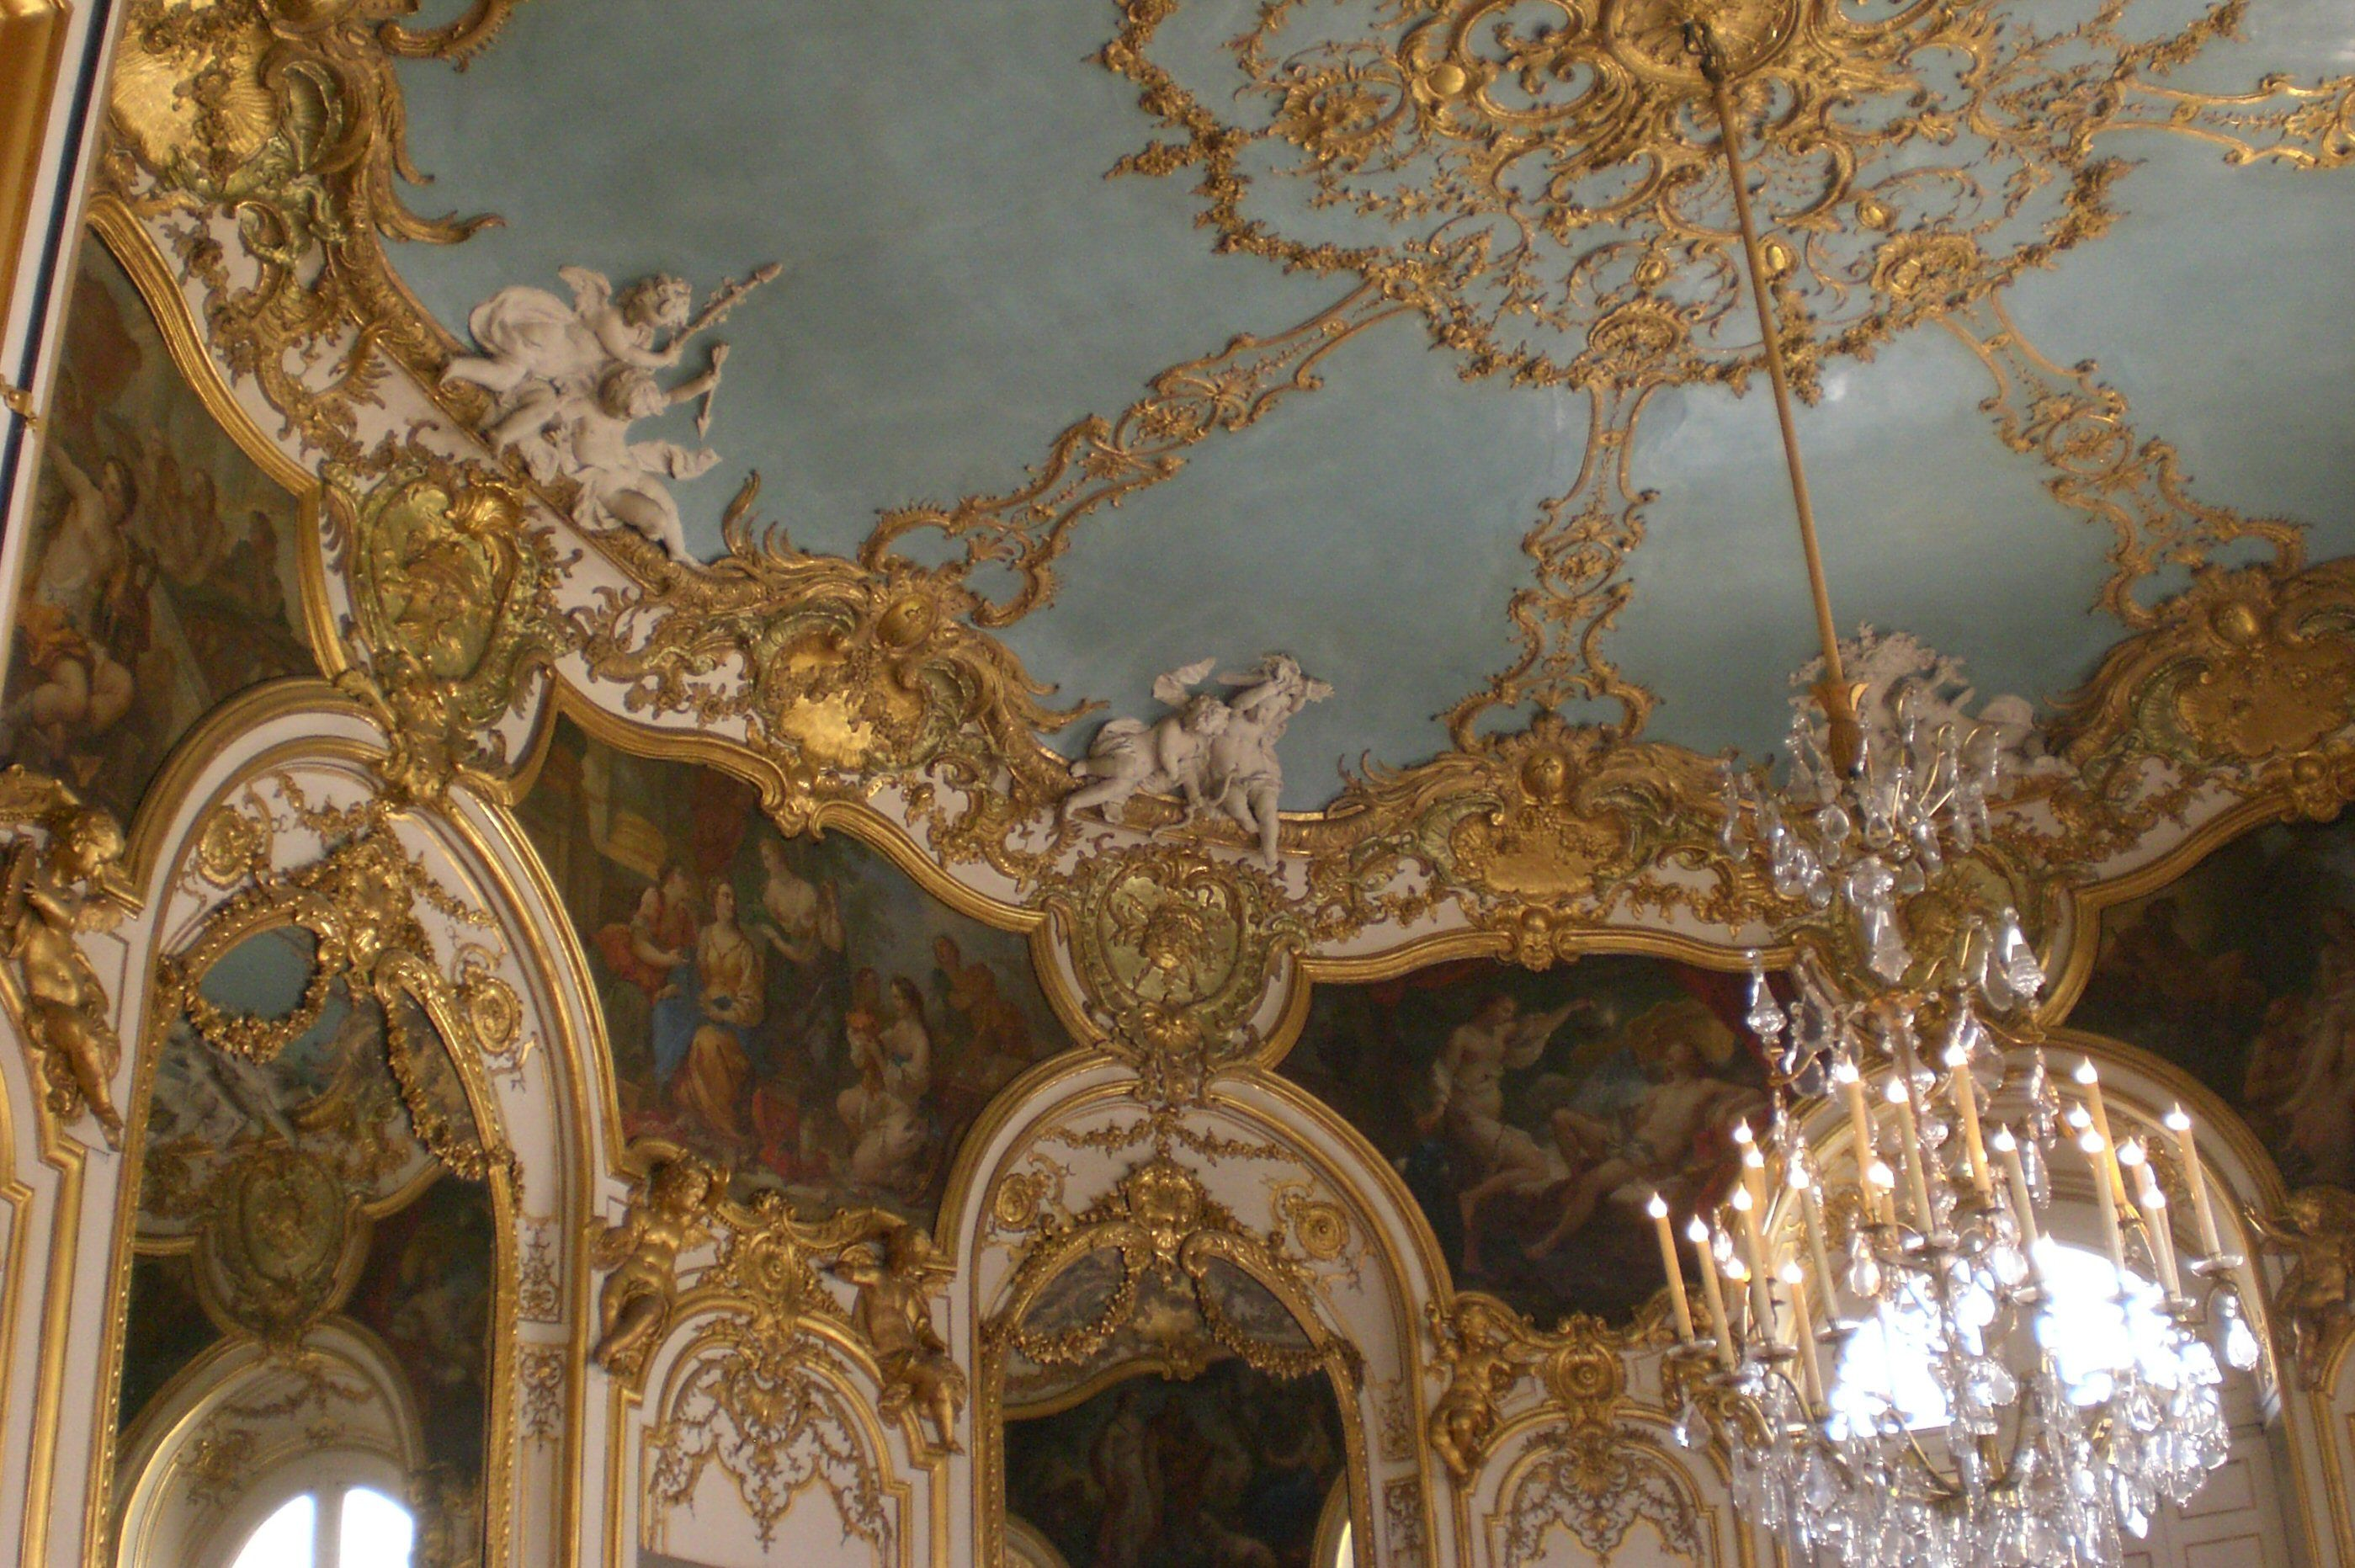 Detail of the Oval Chamber at the Hôtel de Soubise in Paris, France